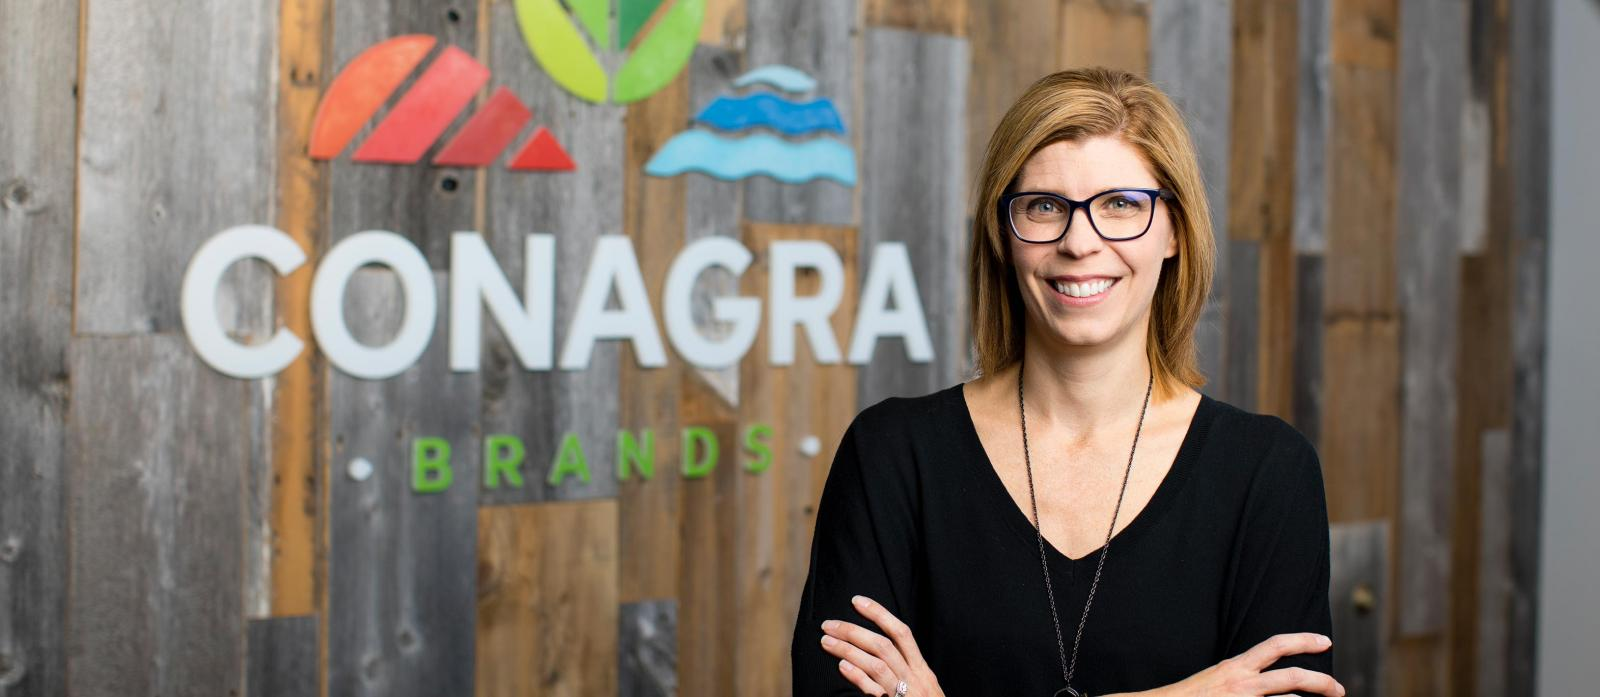 Mindy Simon, MBA Alumna and CIO at Conagra Brands